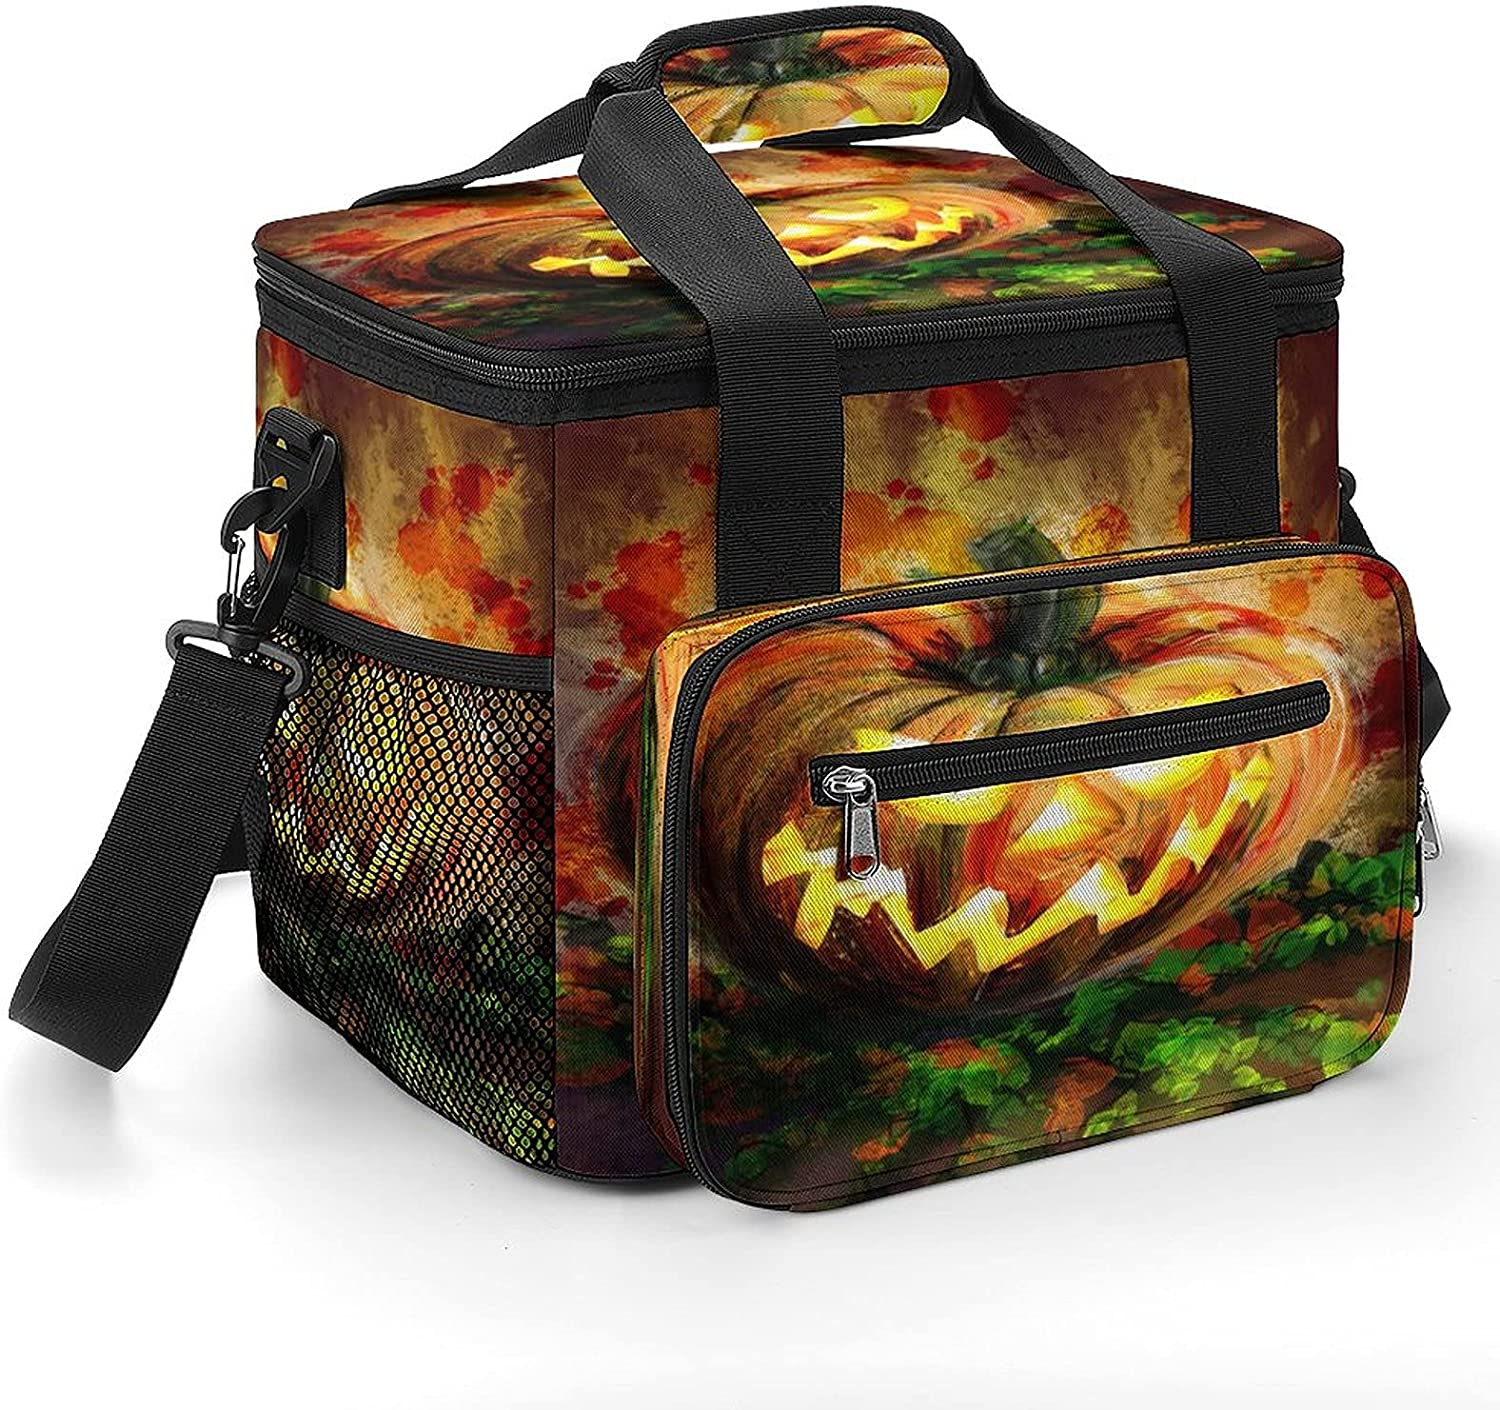 Oil Painting Halloween Pumpkins Cooler I All stores are sold OFFicial site Strap Shoulder with Bag